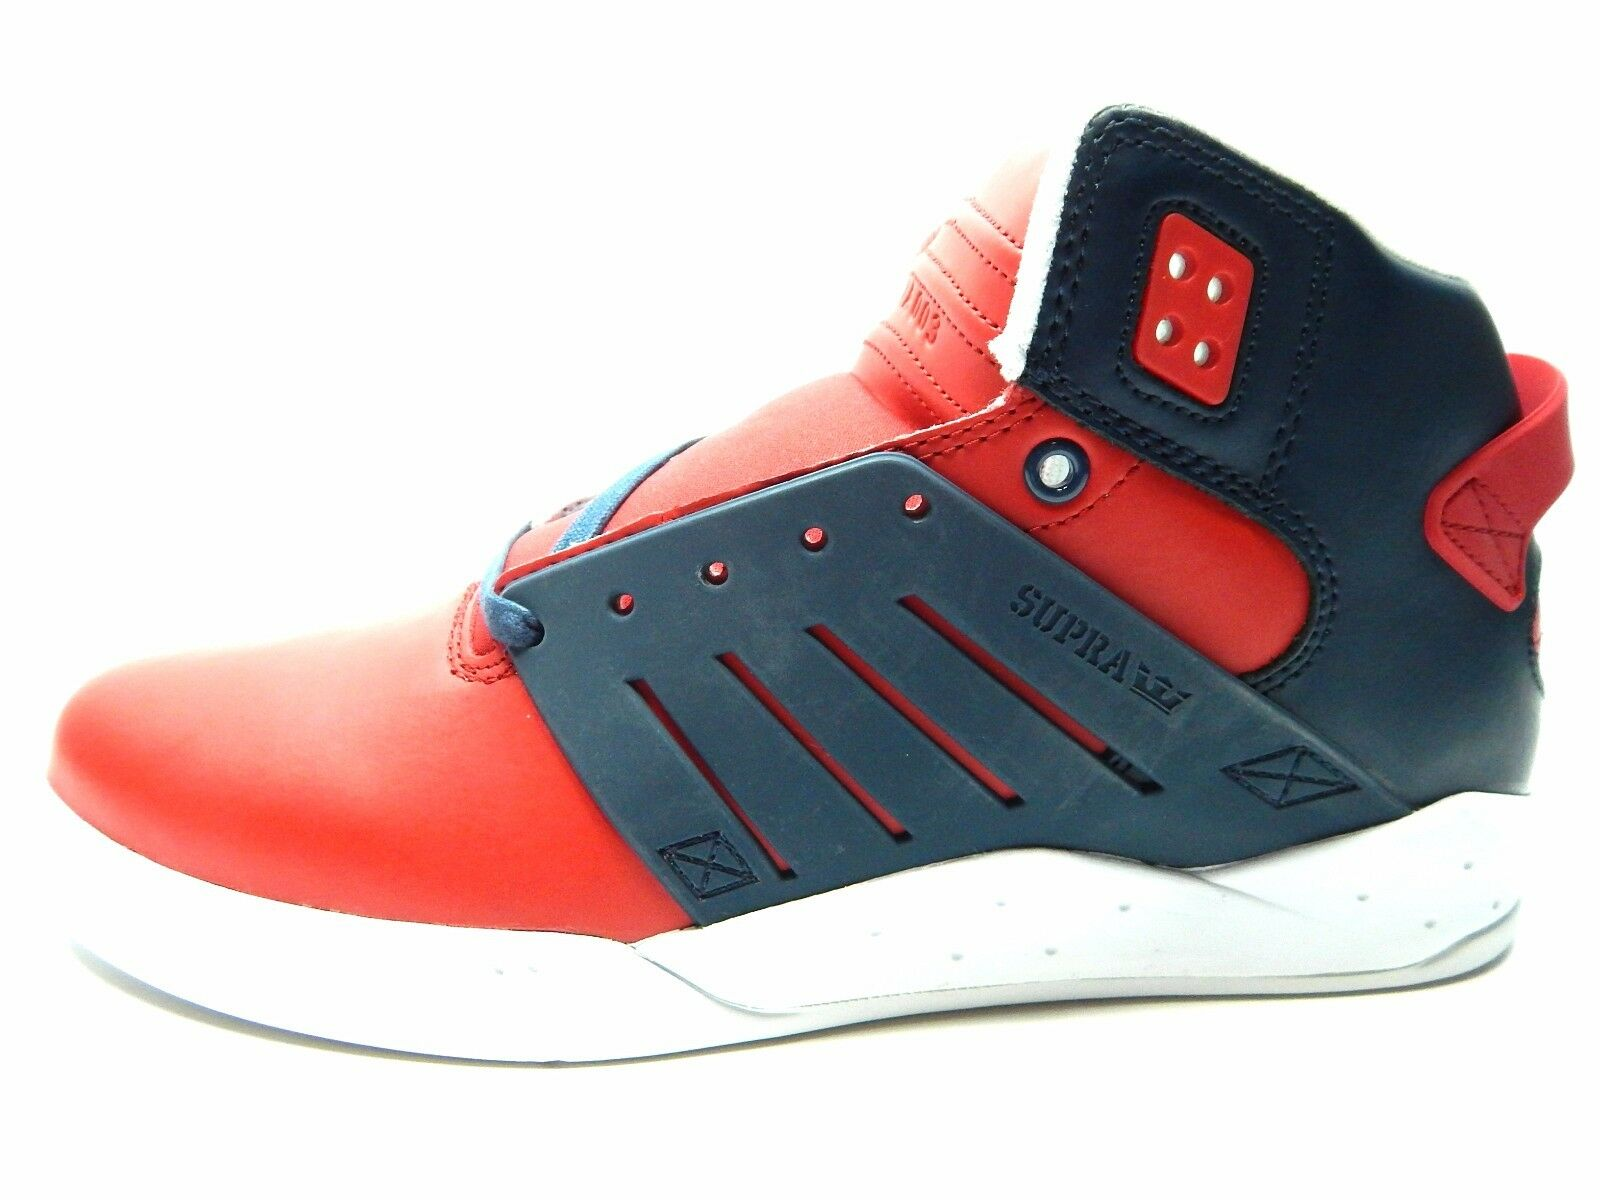 SUPRA hommes SKYTOP III rouge NAVY blanc hommes Chaussures SIZE 11